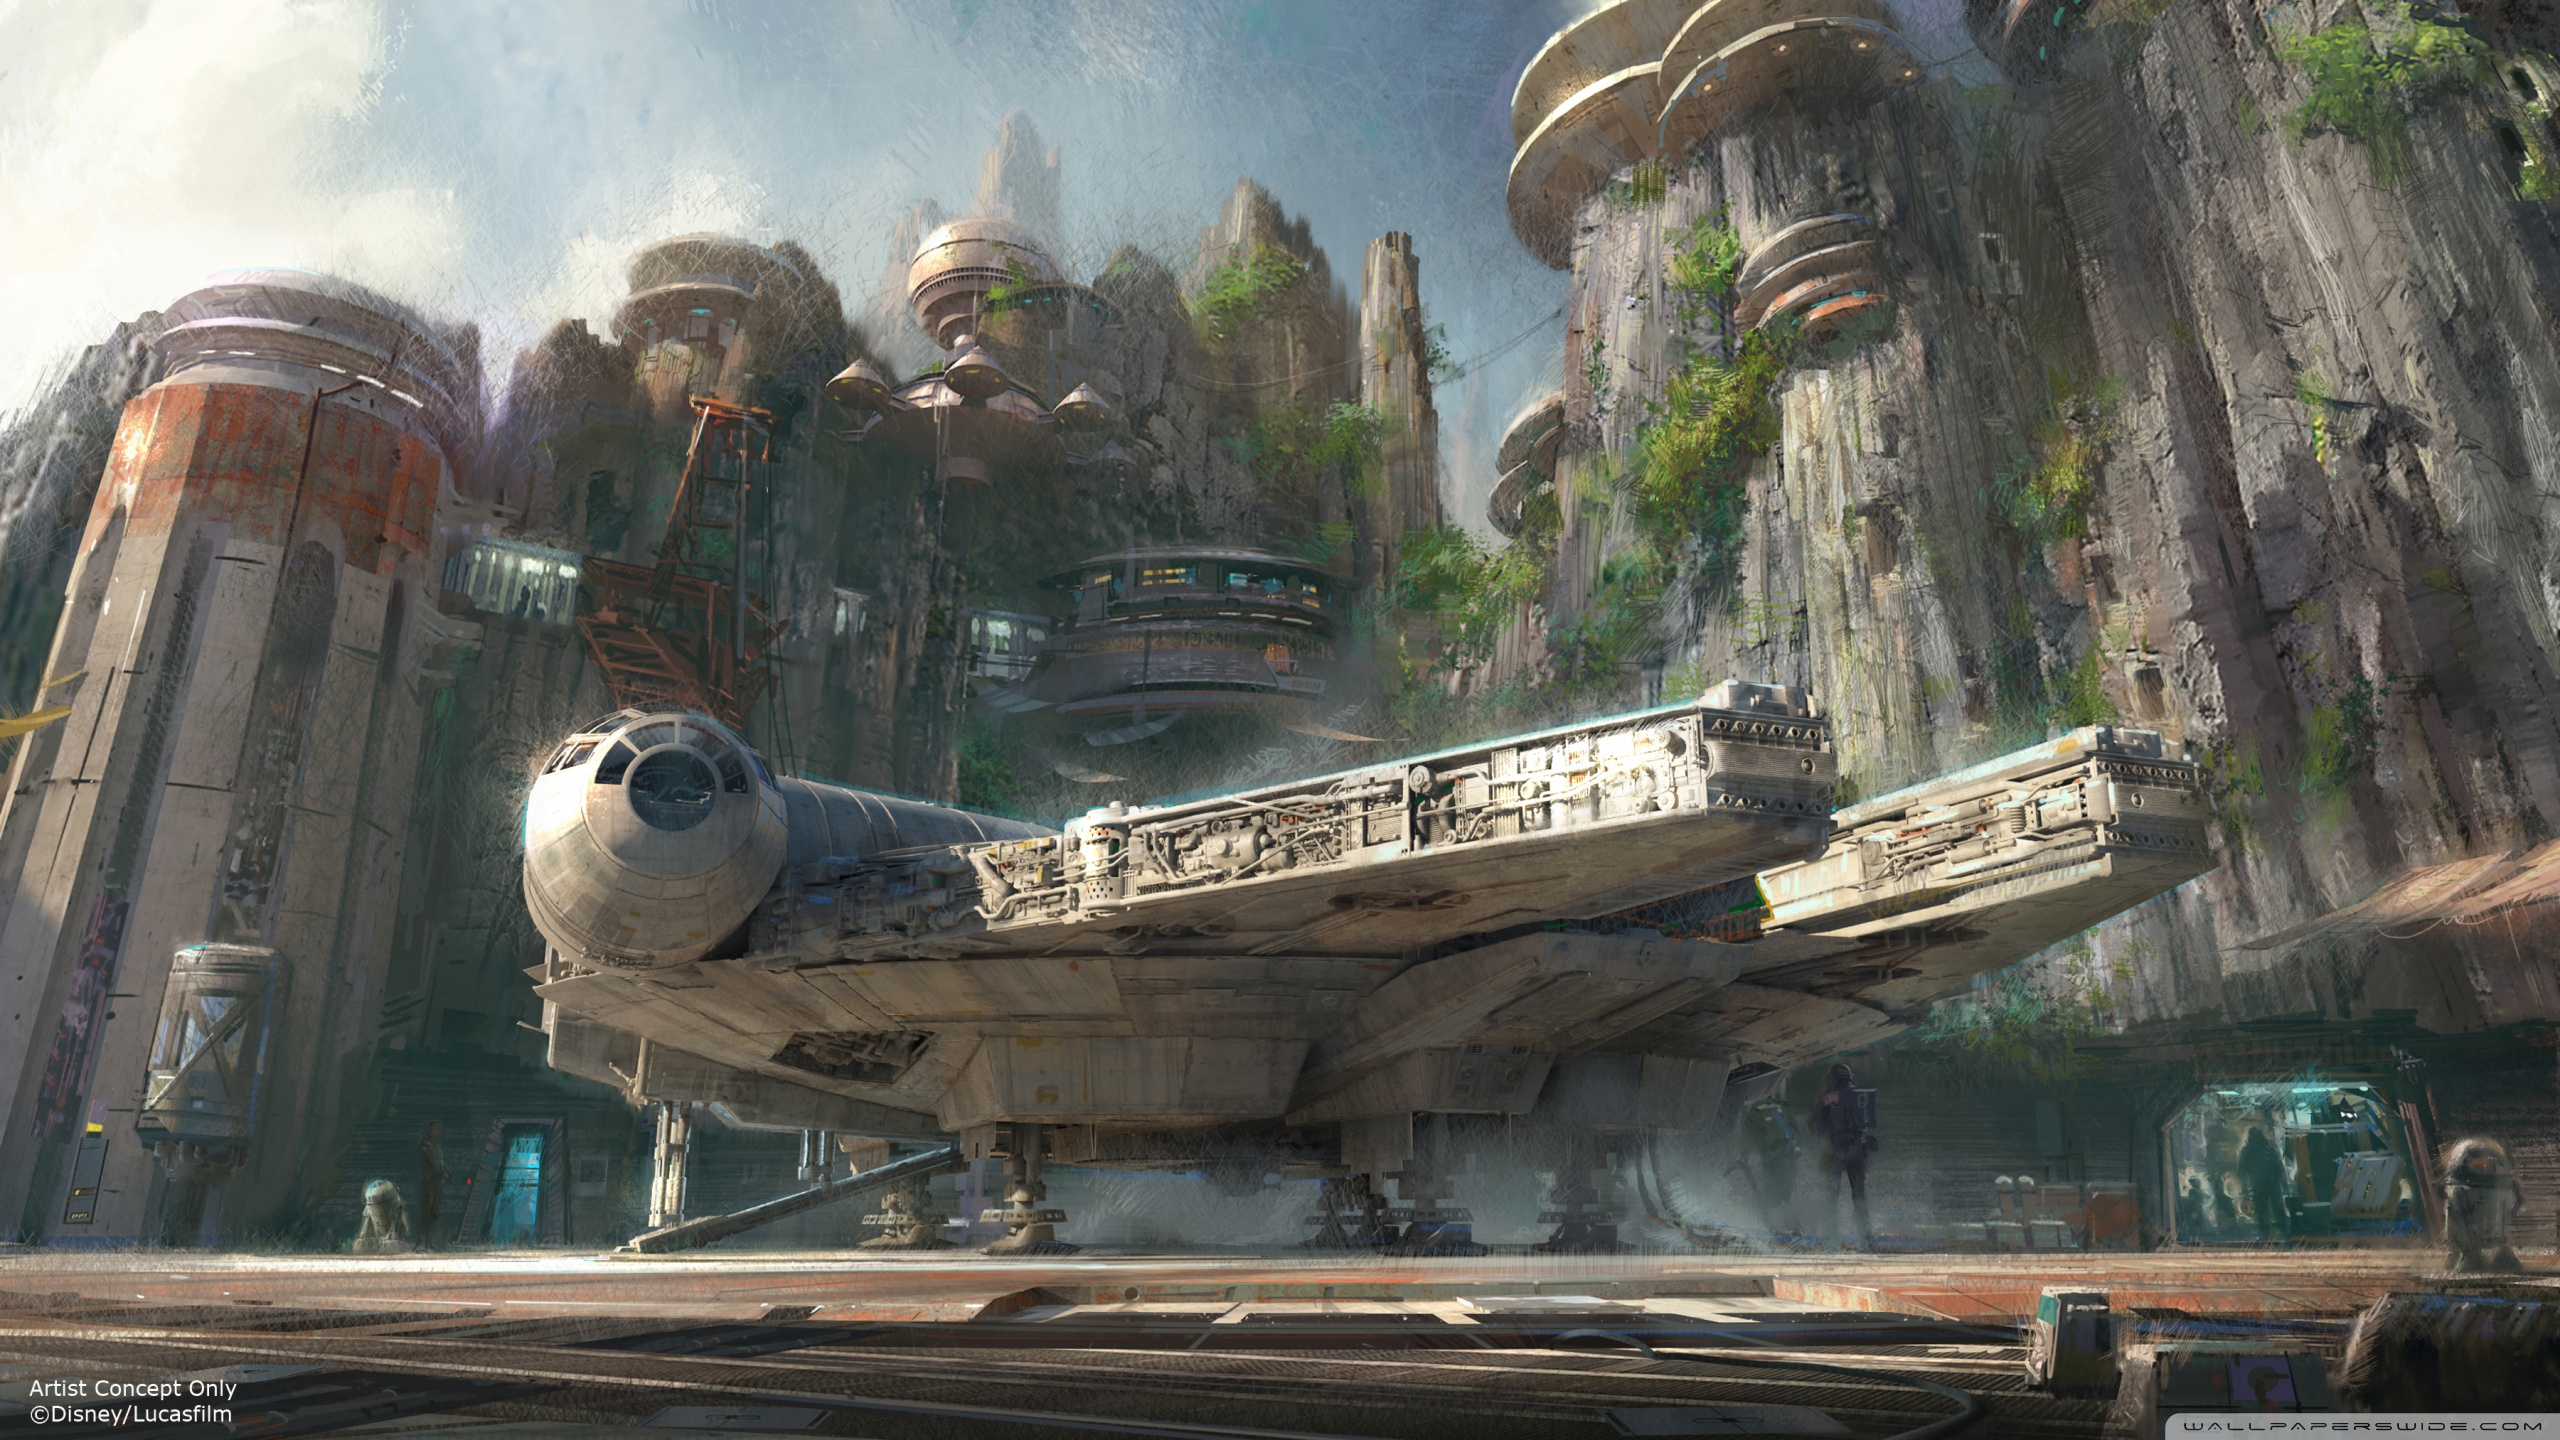 millennium_falcon_docked-wallpaper-2560x1440